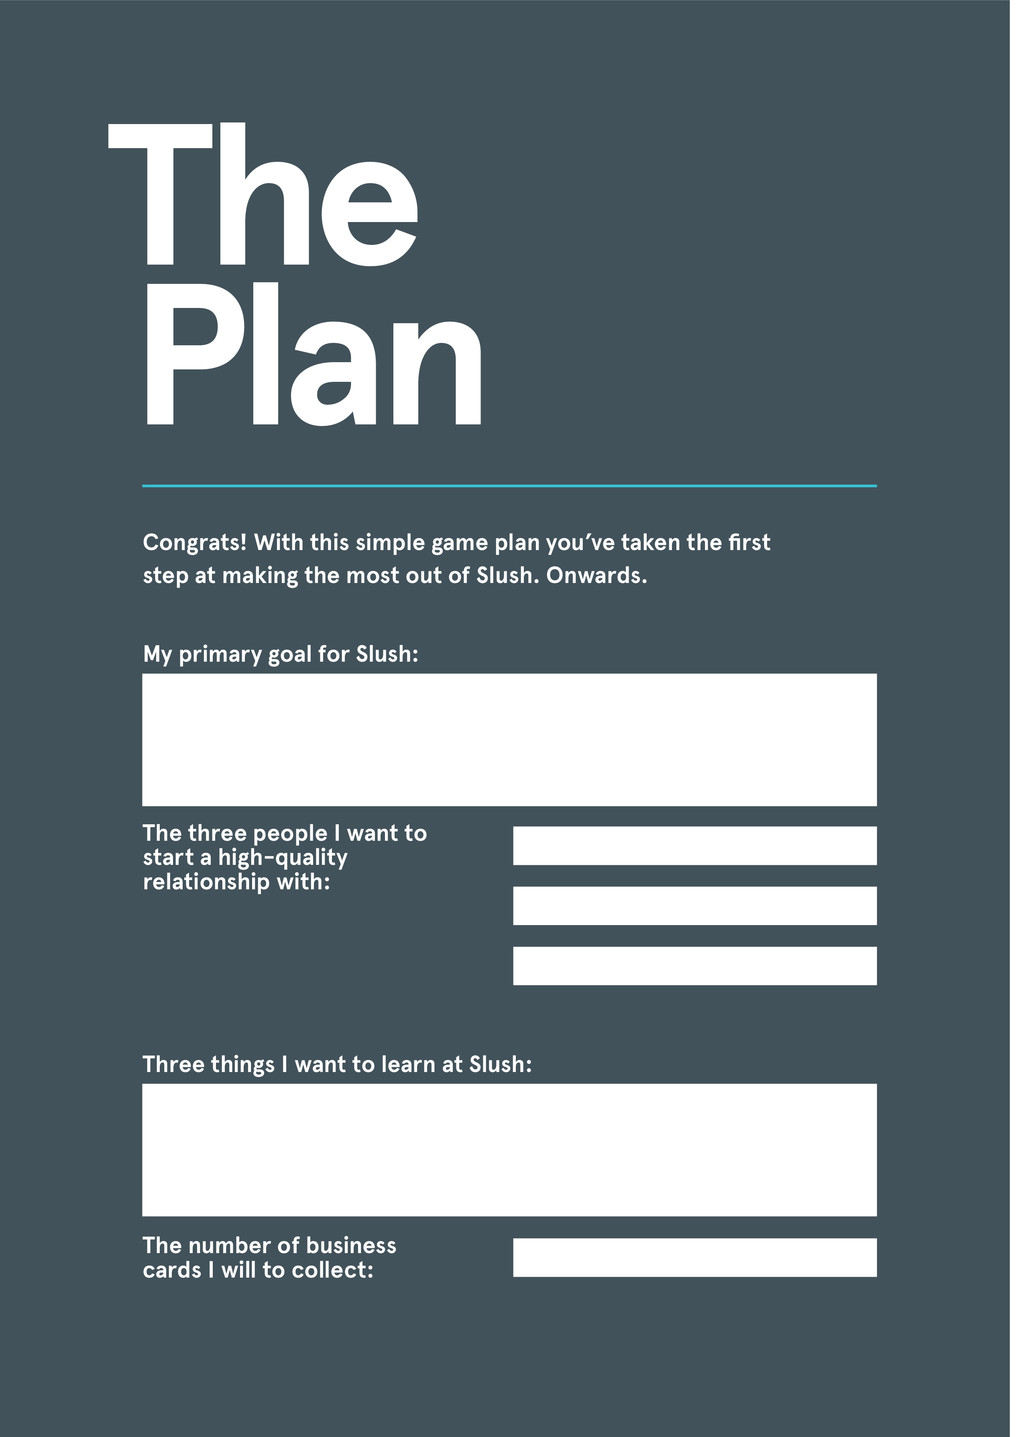 Congrats! With this simple game plan you've tak...